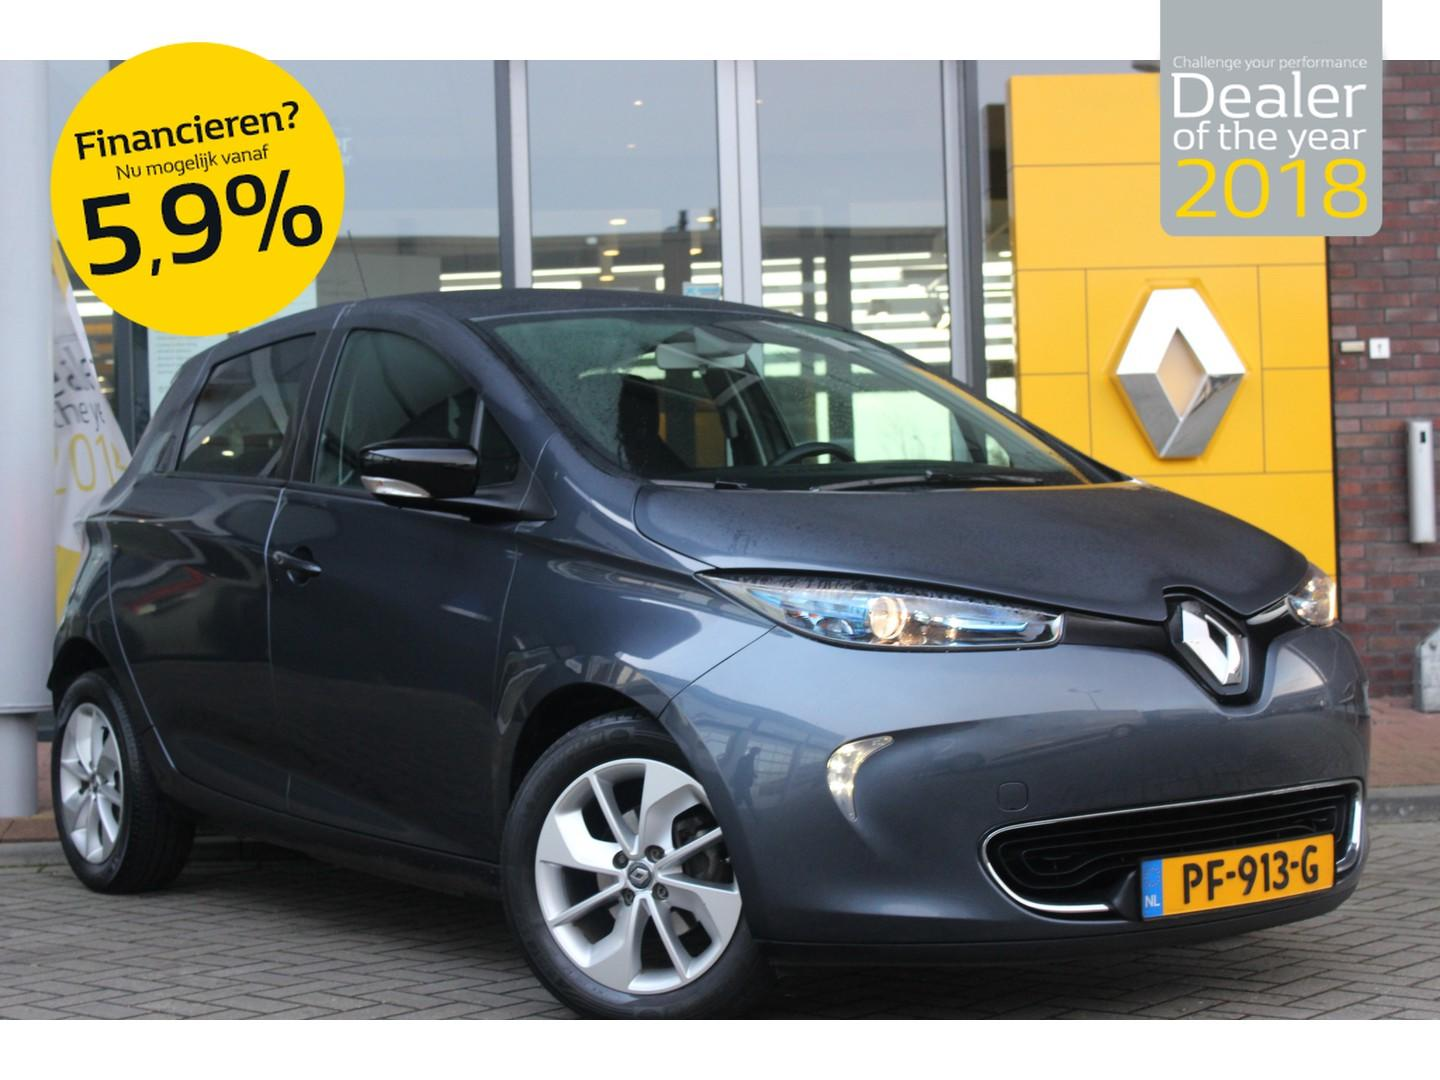 Renault Zoe Q90 intens quickcharge 41 kwh (ex accu)